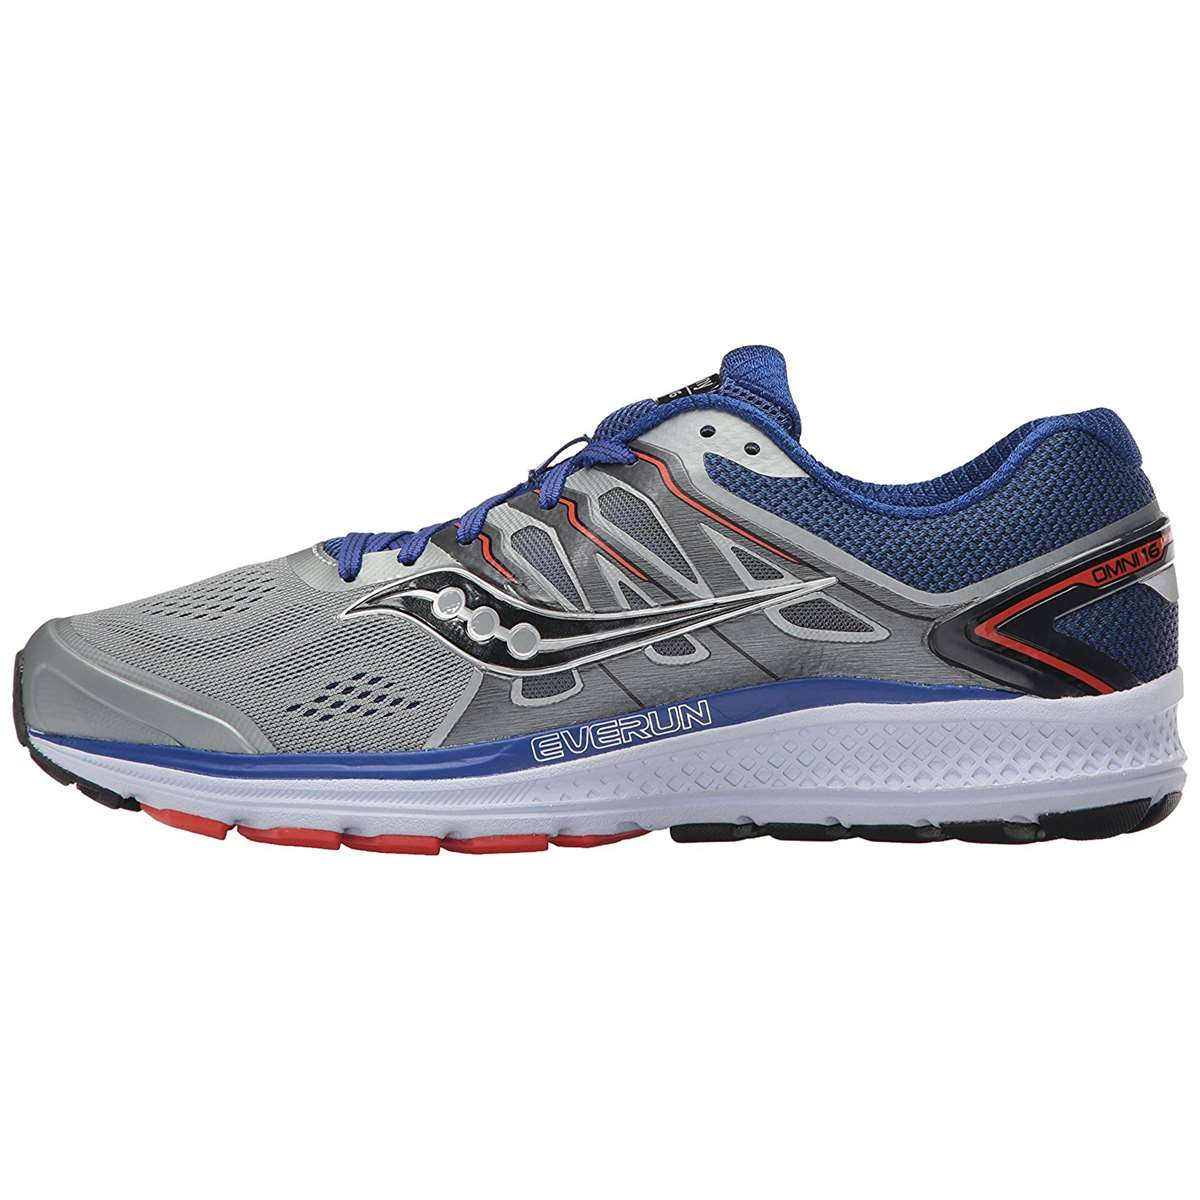 Saucony Men Omni 16 Running Shoes by Saucony